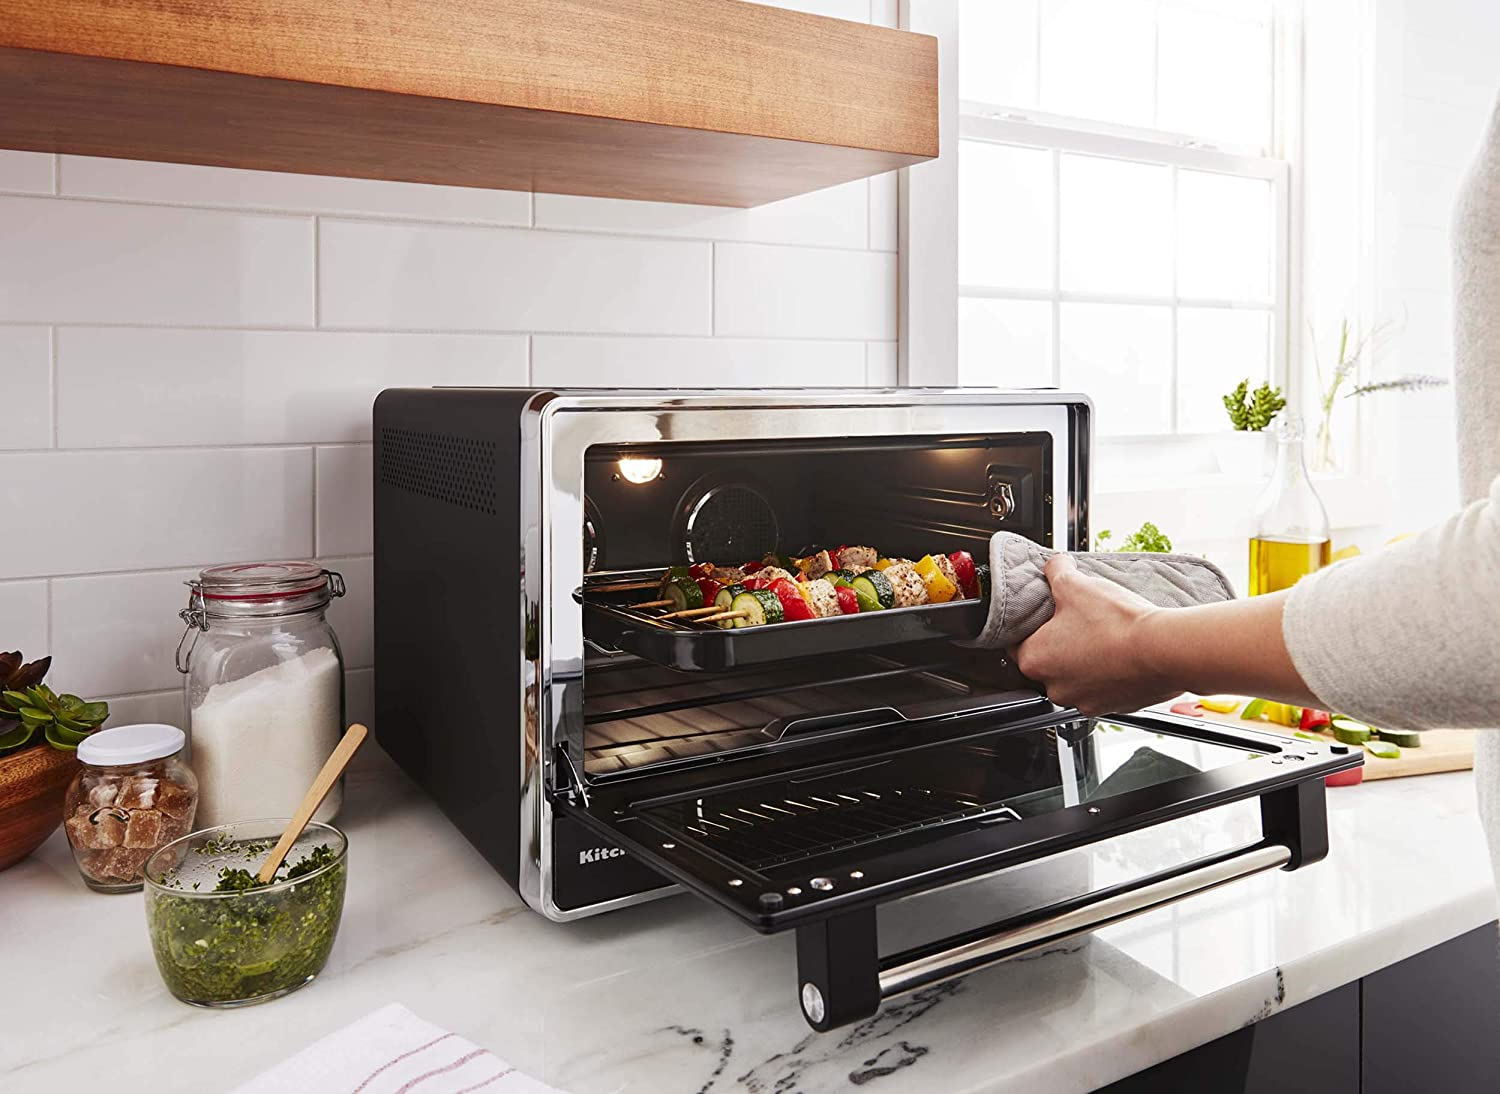 Top 10 Best Counter Top Convection Ovens